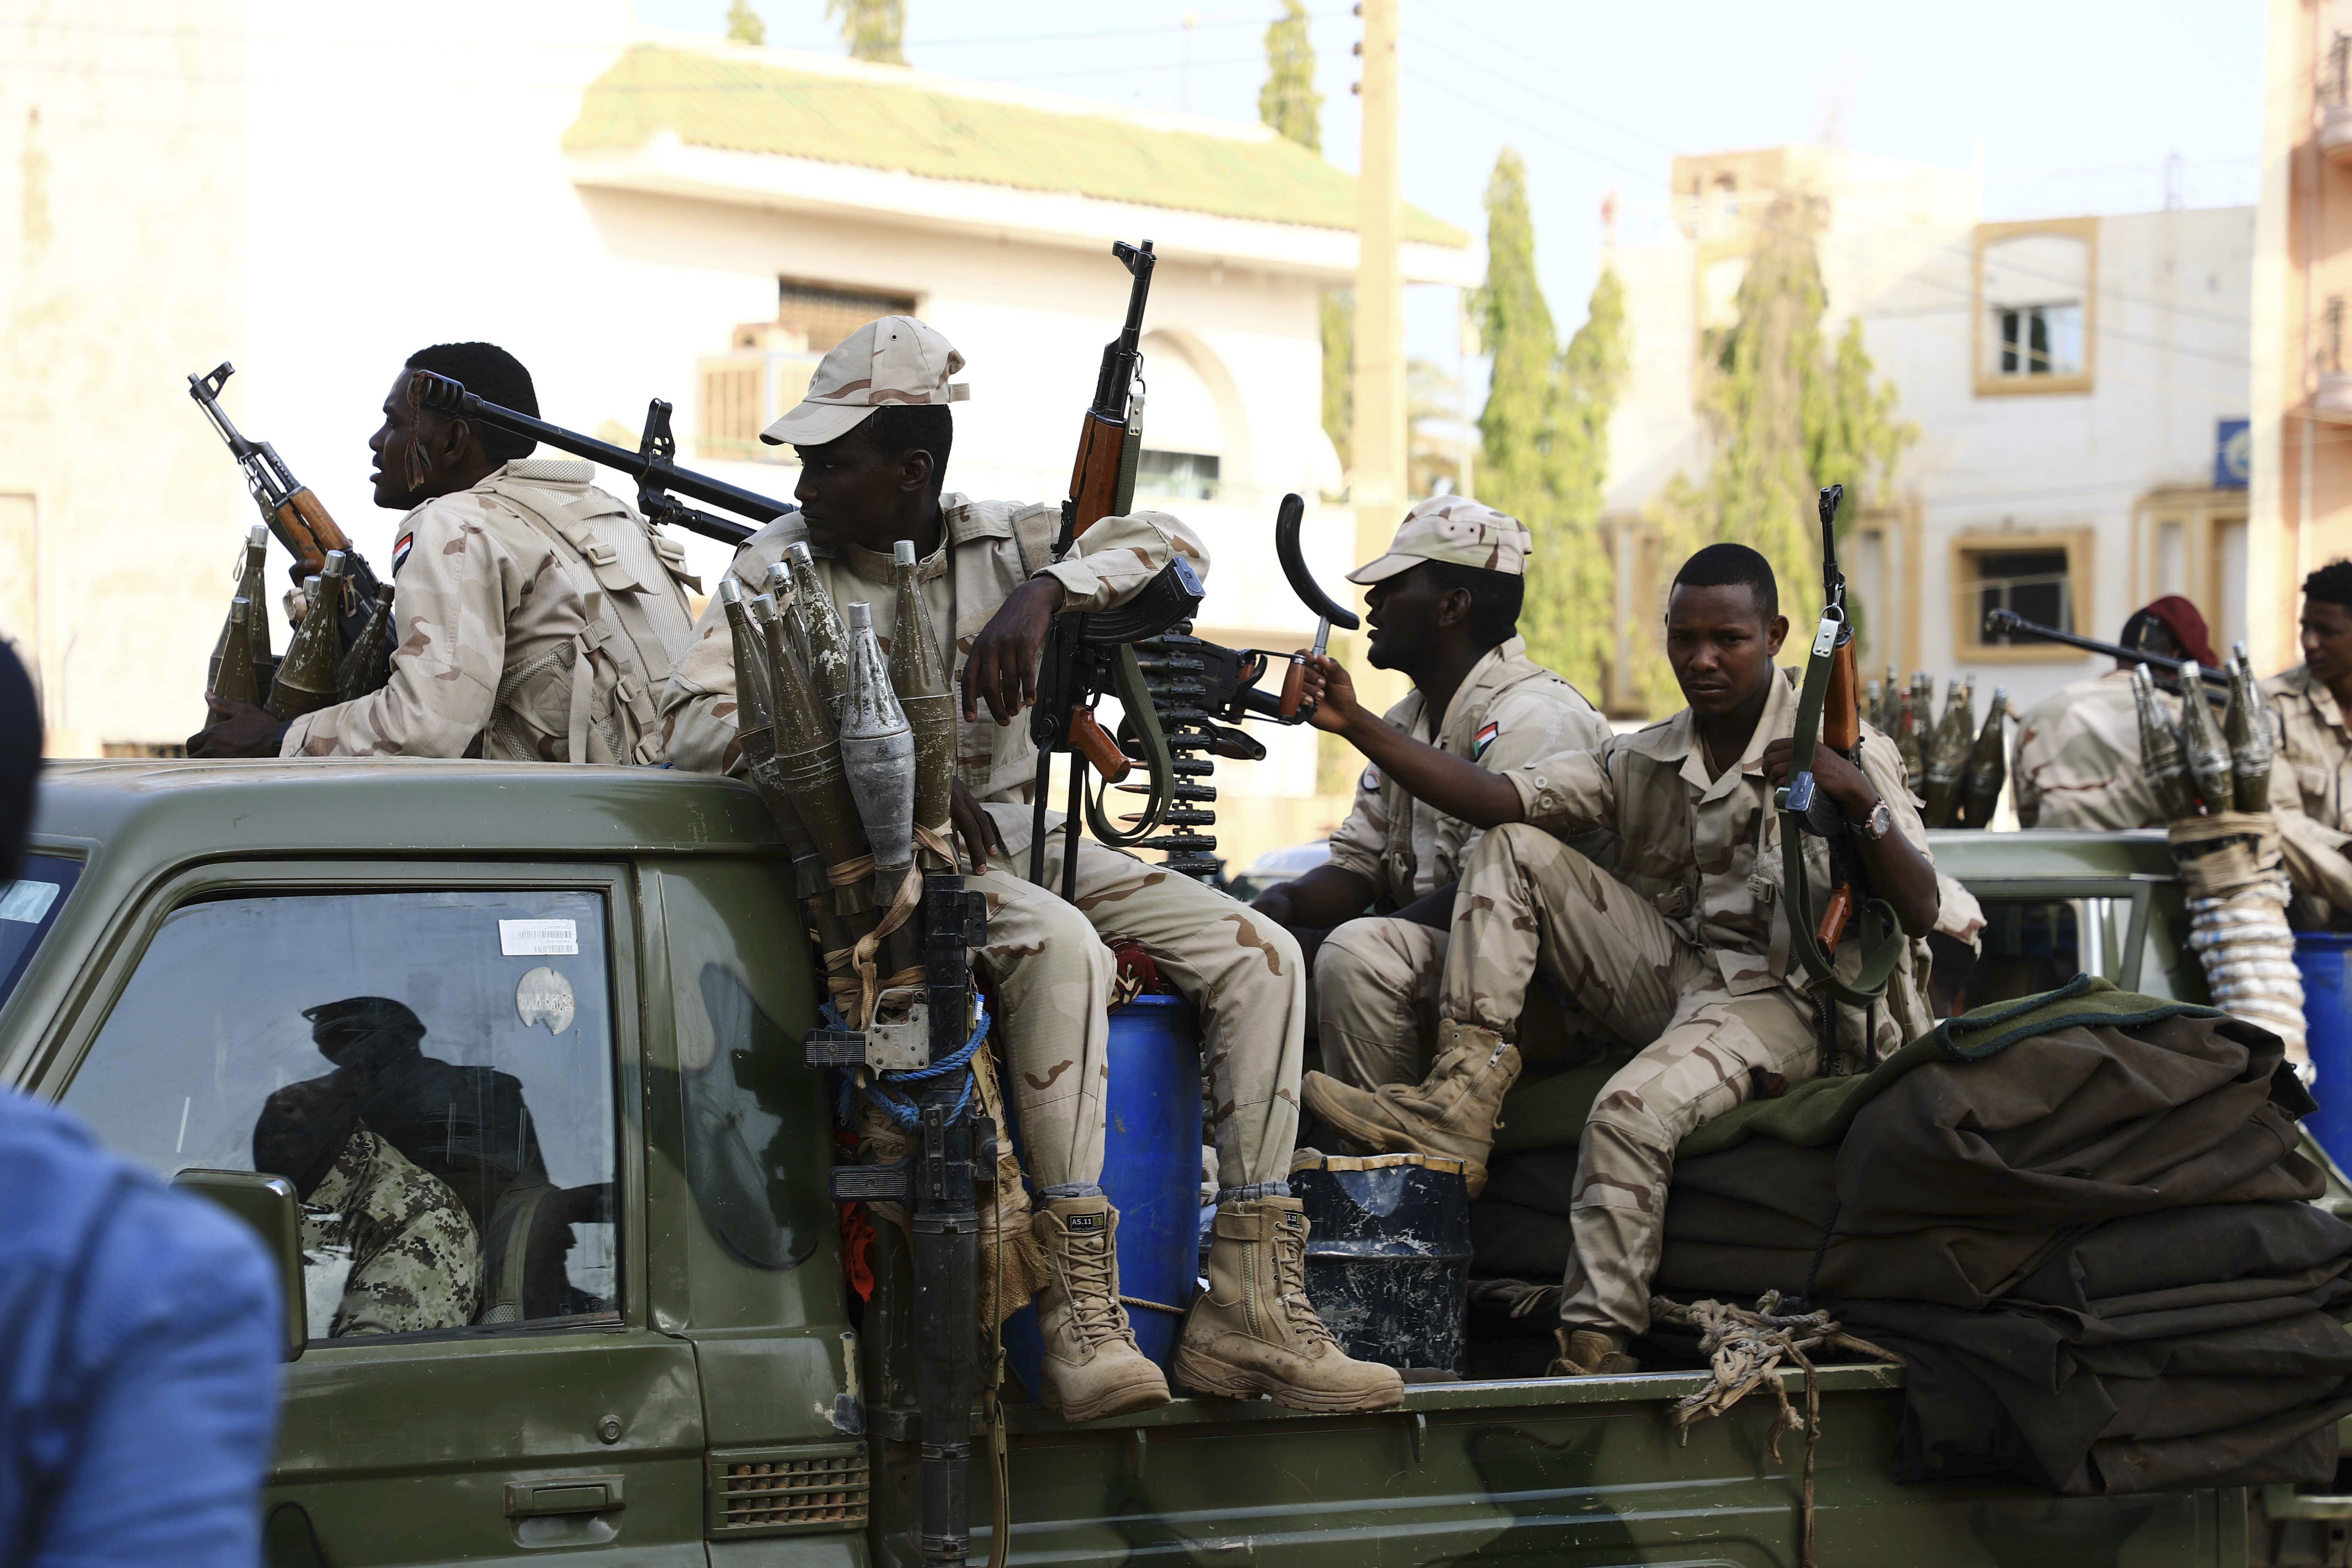 Military forces secure the area outside while Sudan's ousted president Omar al-Bashir is questioned at the prosecutor's office over charges of corruption and illegal possession of foreign currency, in Khartoum, June 16, 2019.